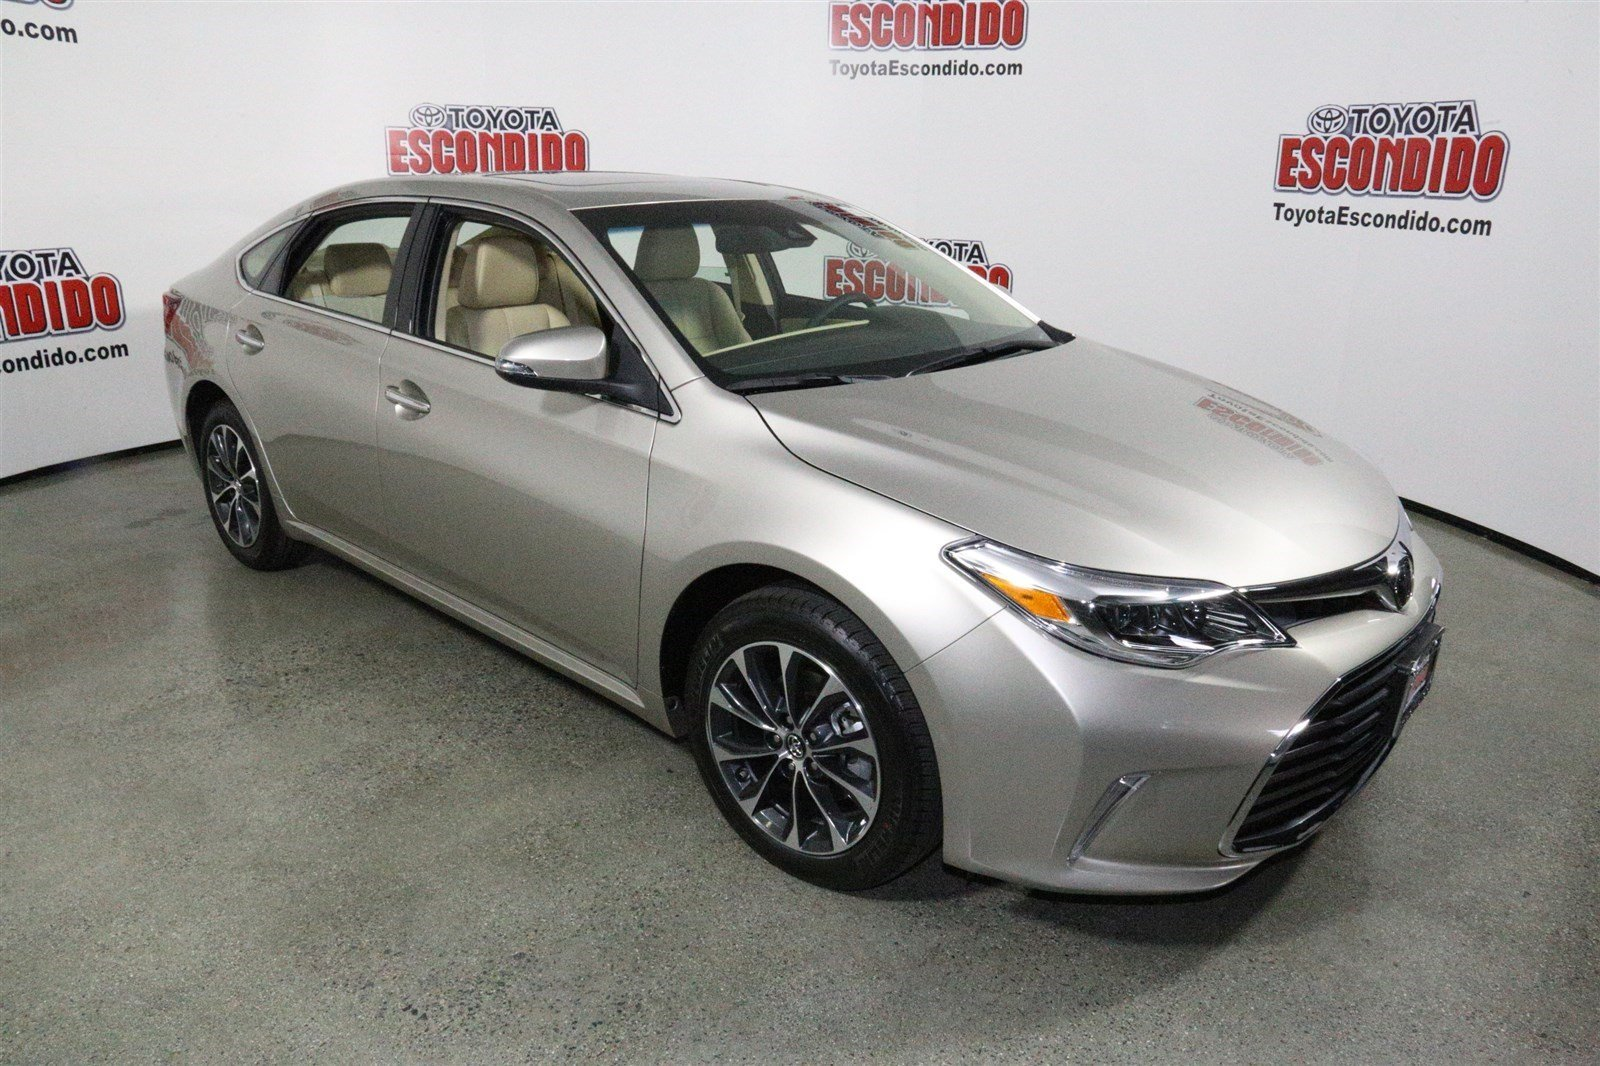 new 2017 toyota avalon xle plus 4dr car in escondido. Black Bedroom Furniture Sets. Home Design Ideas